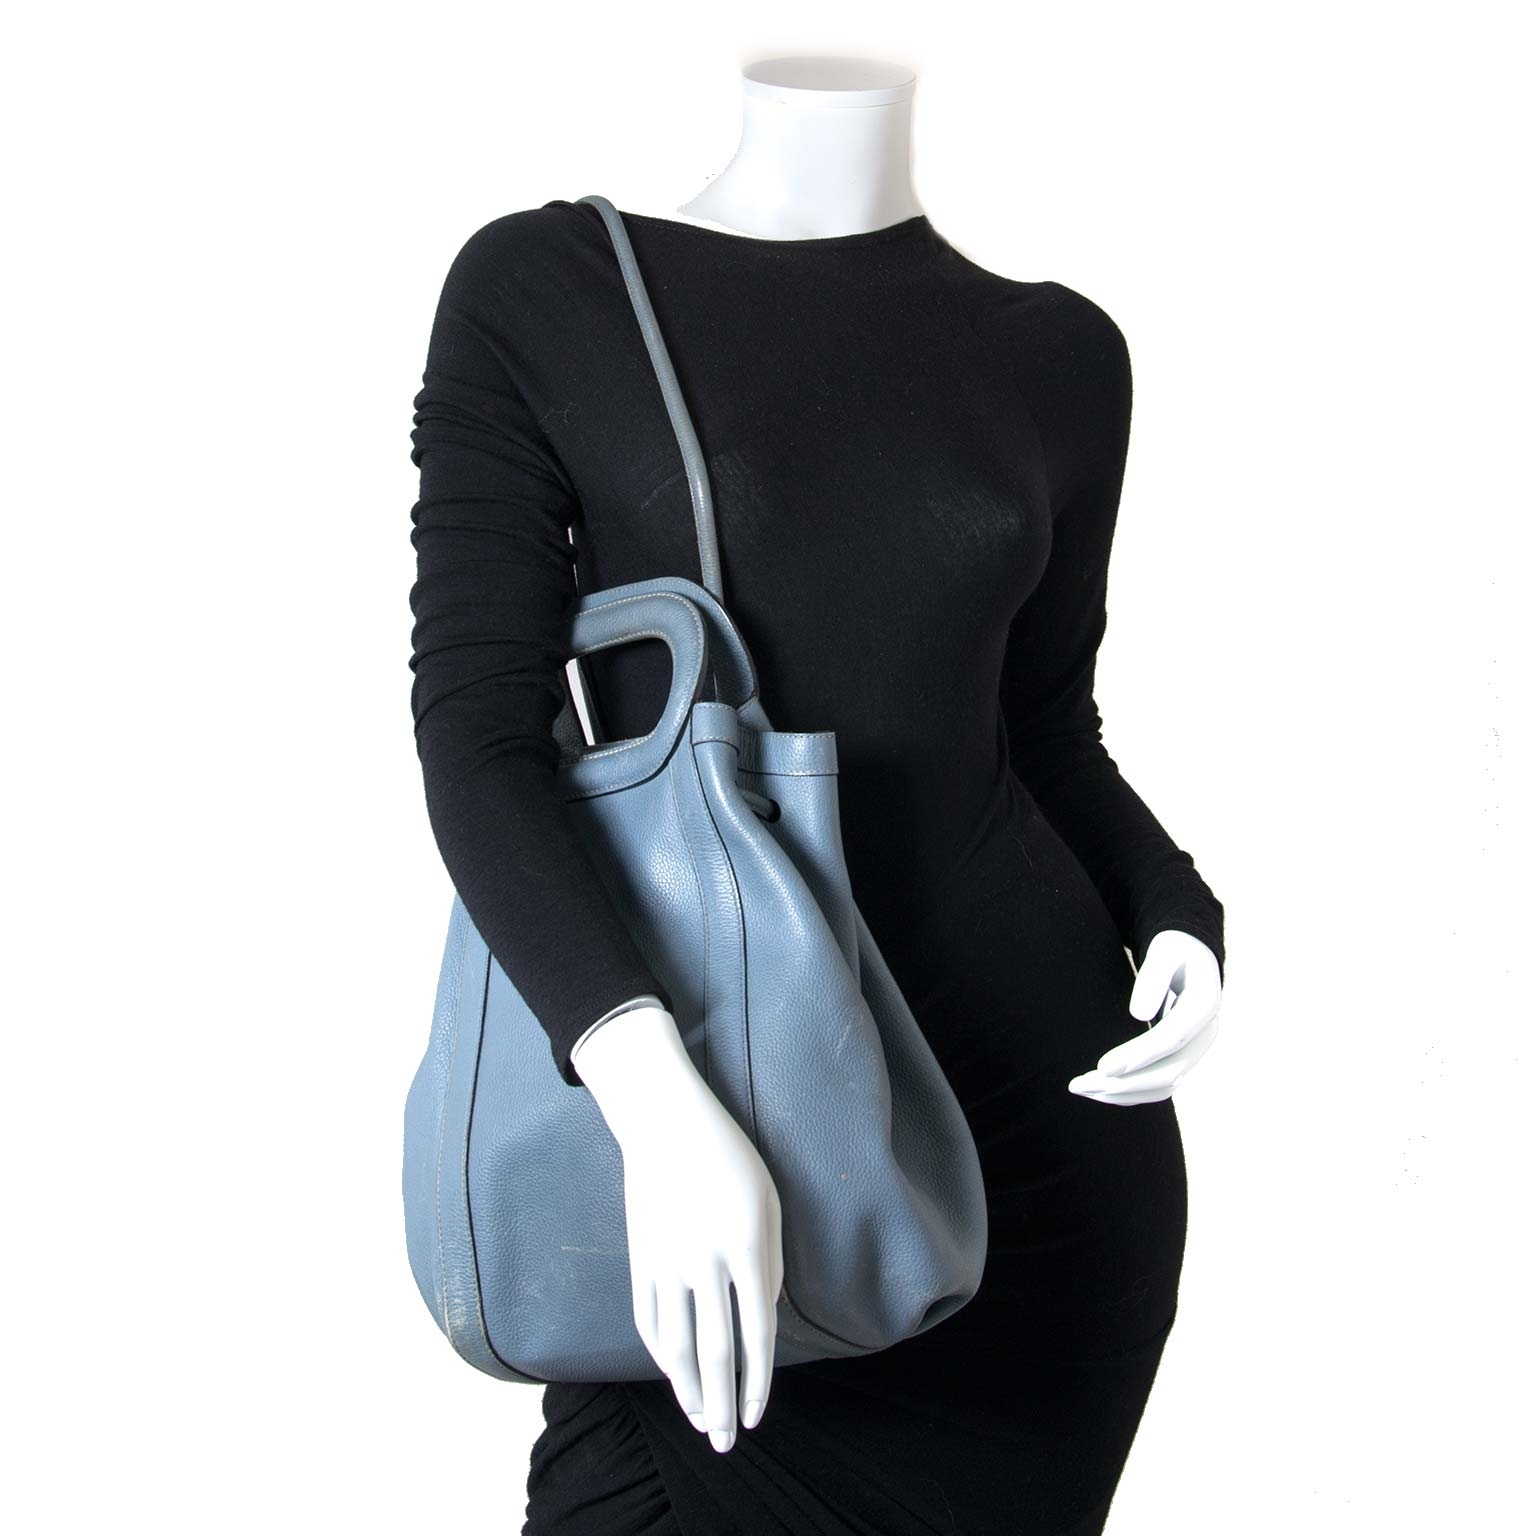 ... Delvaux Blue Punch Shoulder Bag now for sale at labellov vintage  fashion webshop belgium f1e93eae0a48c